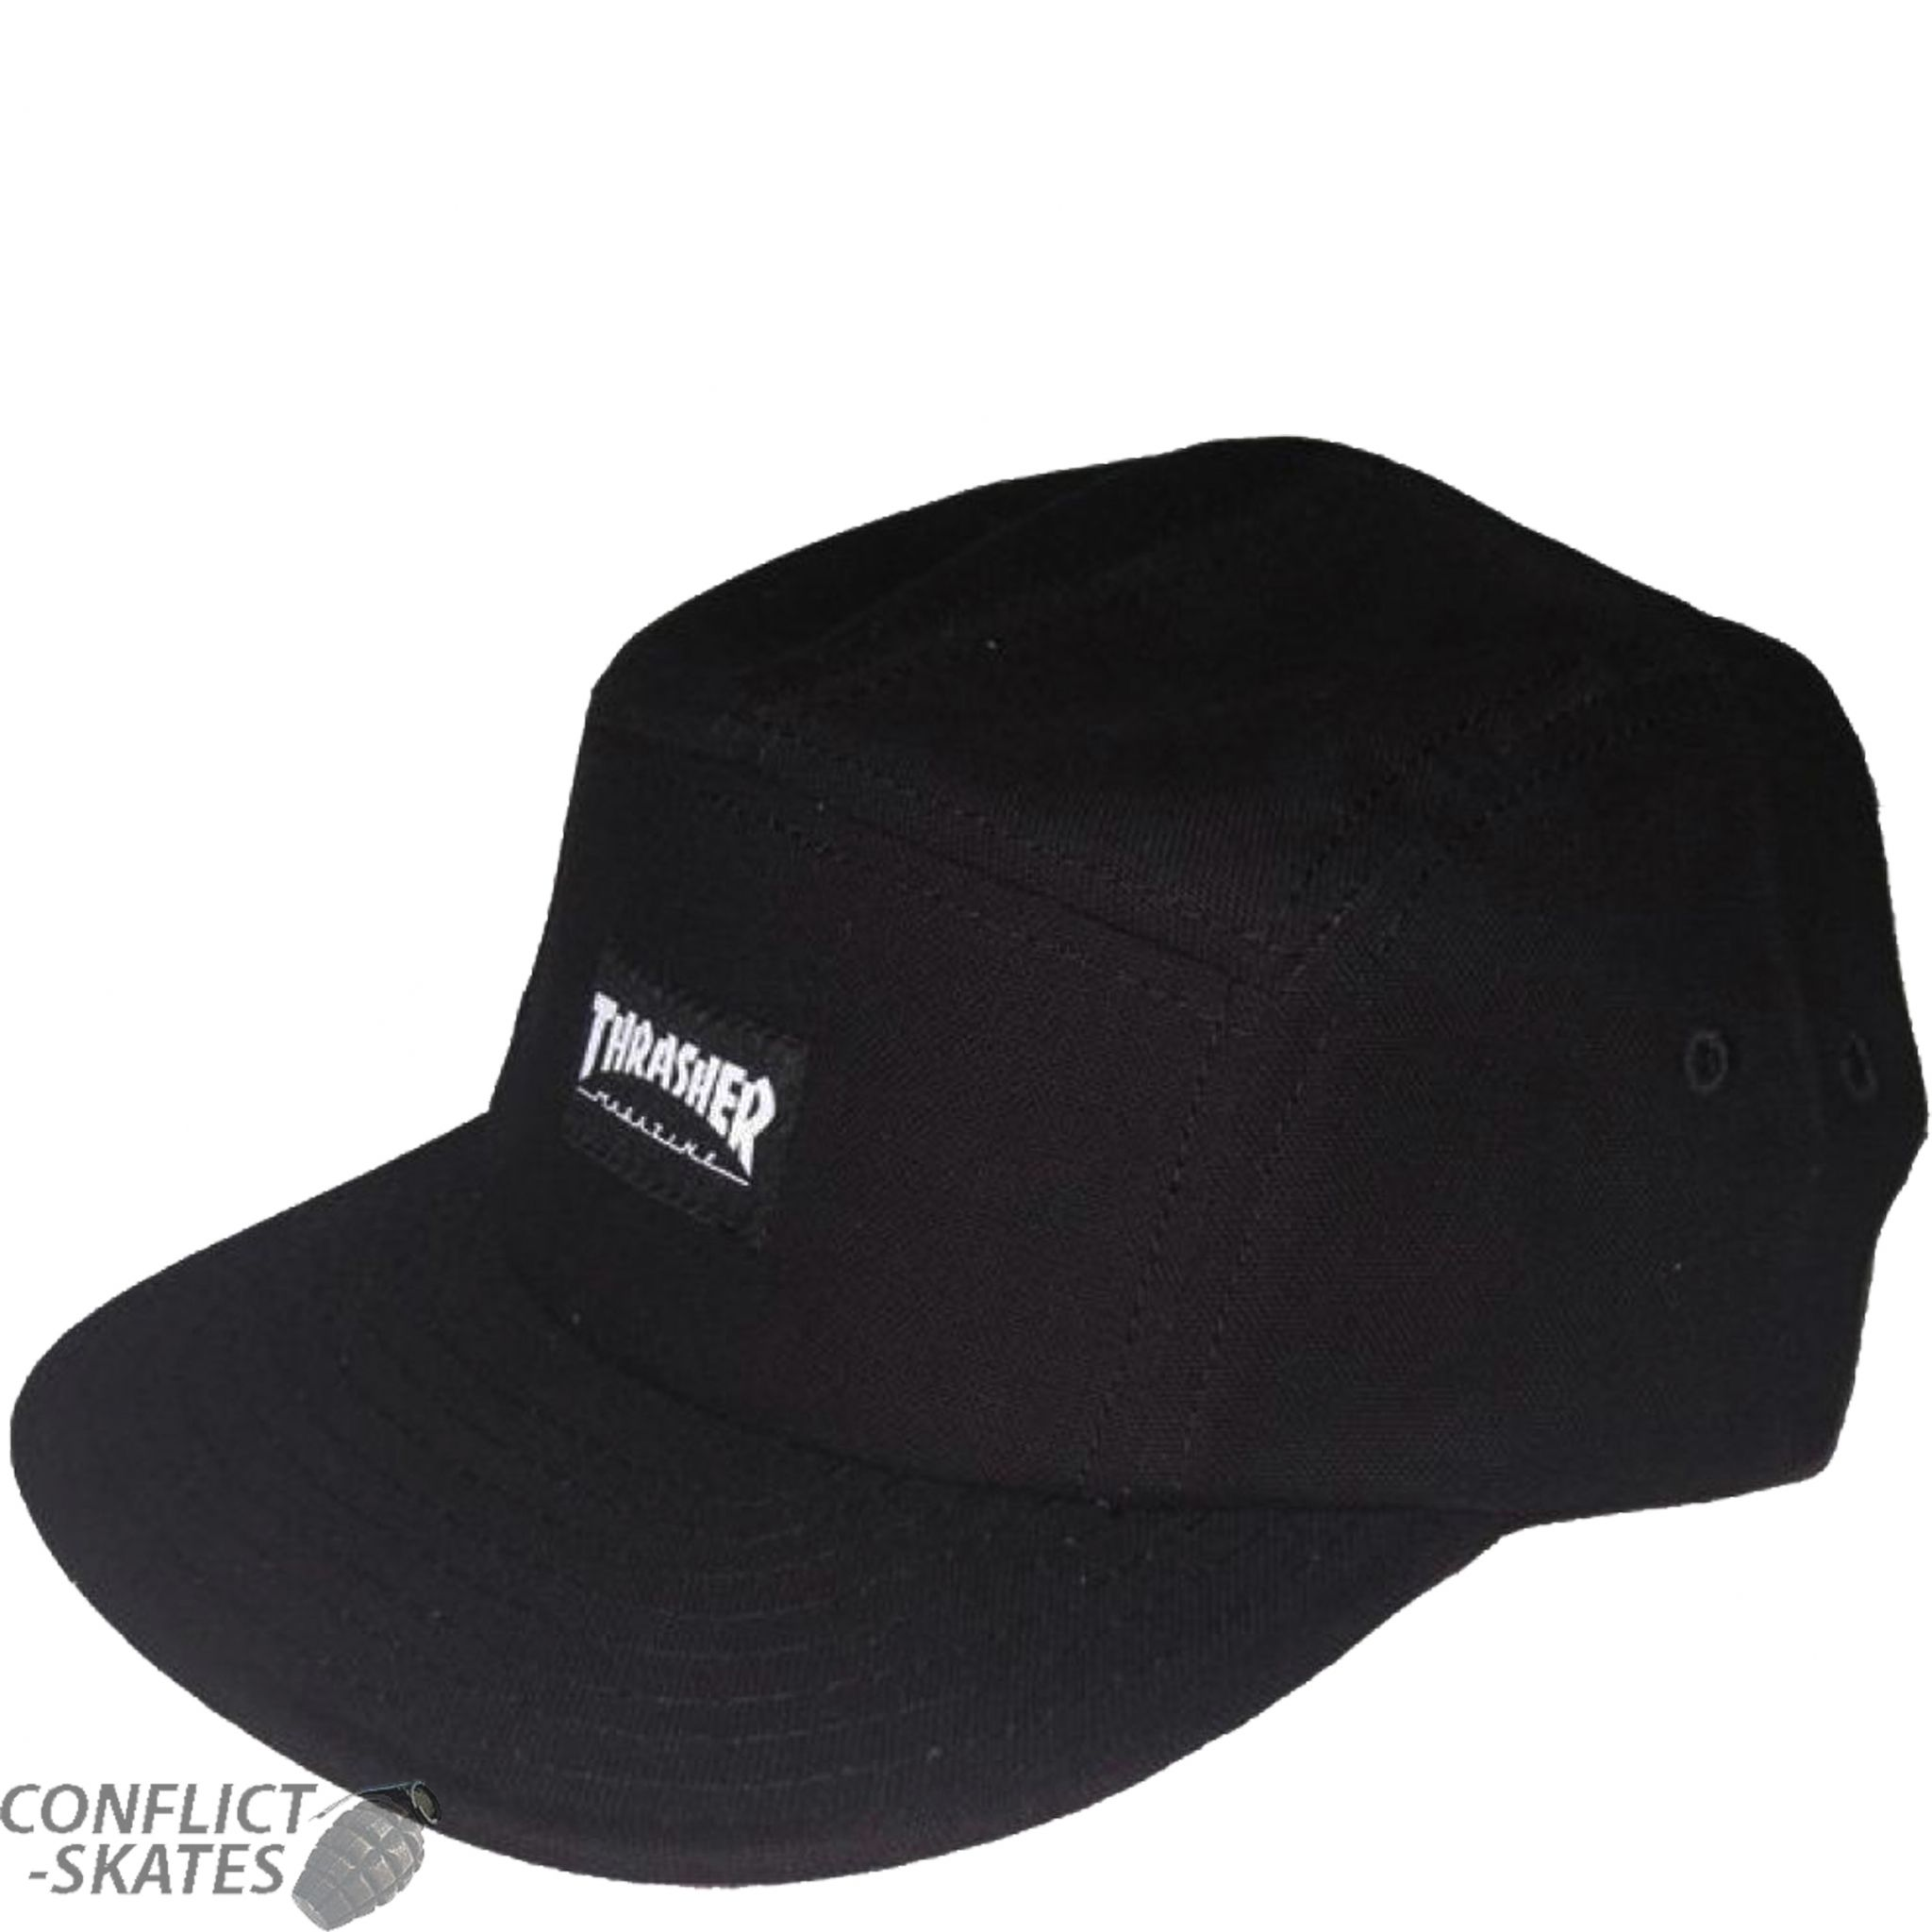 f79734d3aa8 THRASHER MAGAZINE 5 Panel Skateboard Cap OSFA BLACK Hat